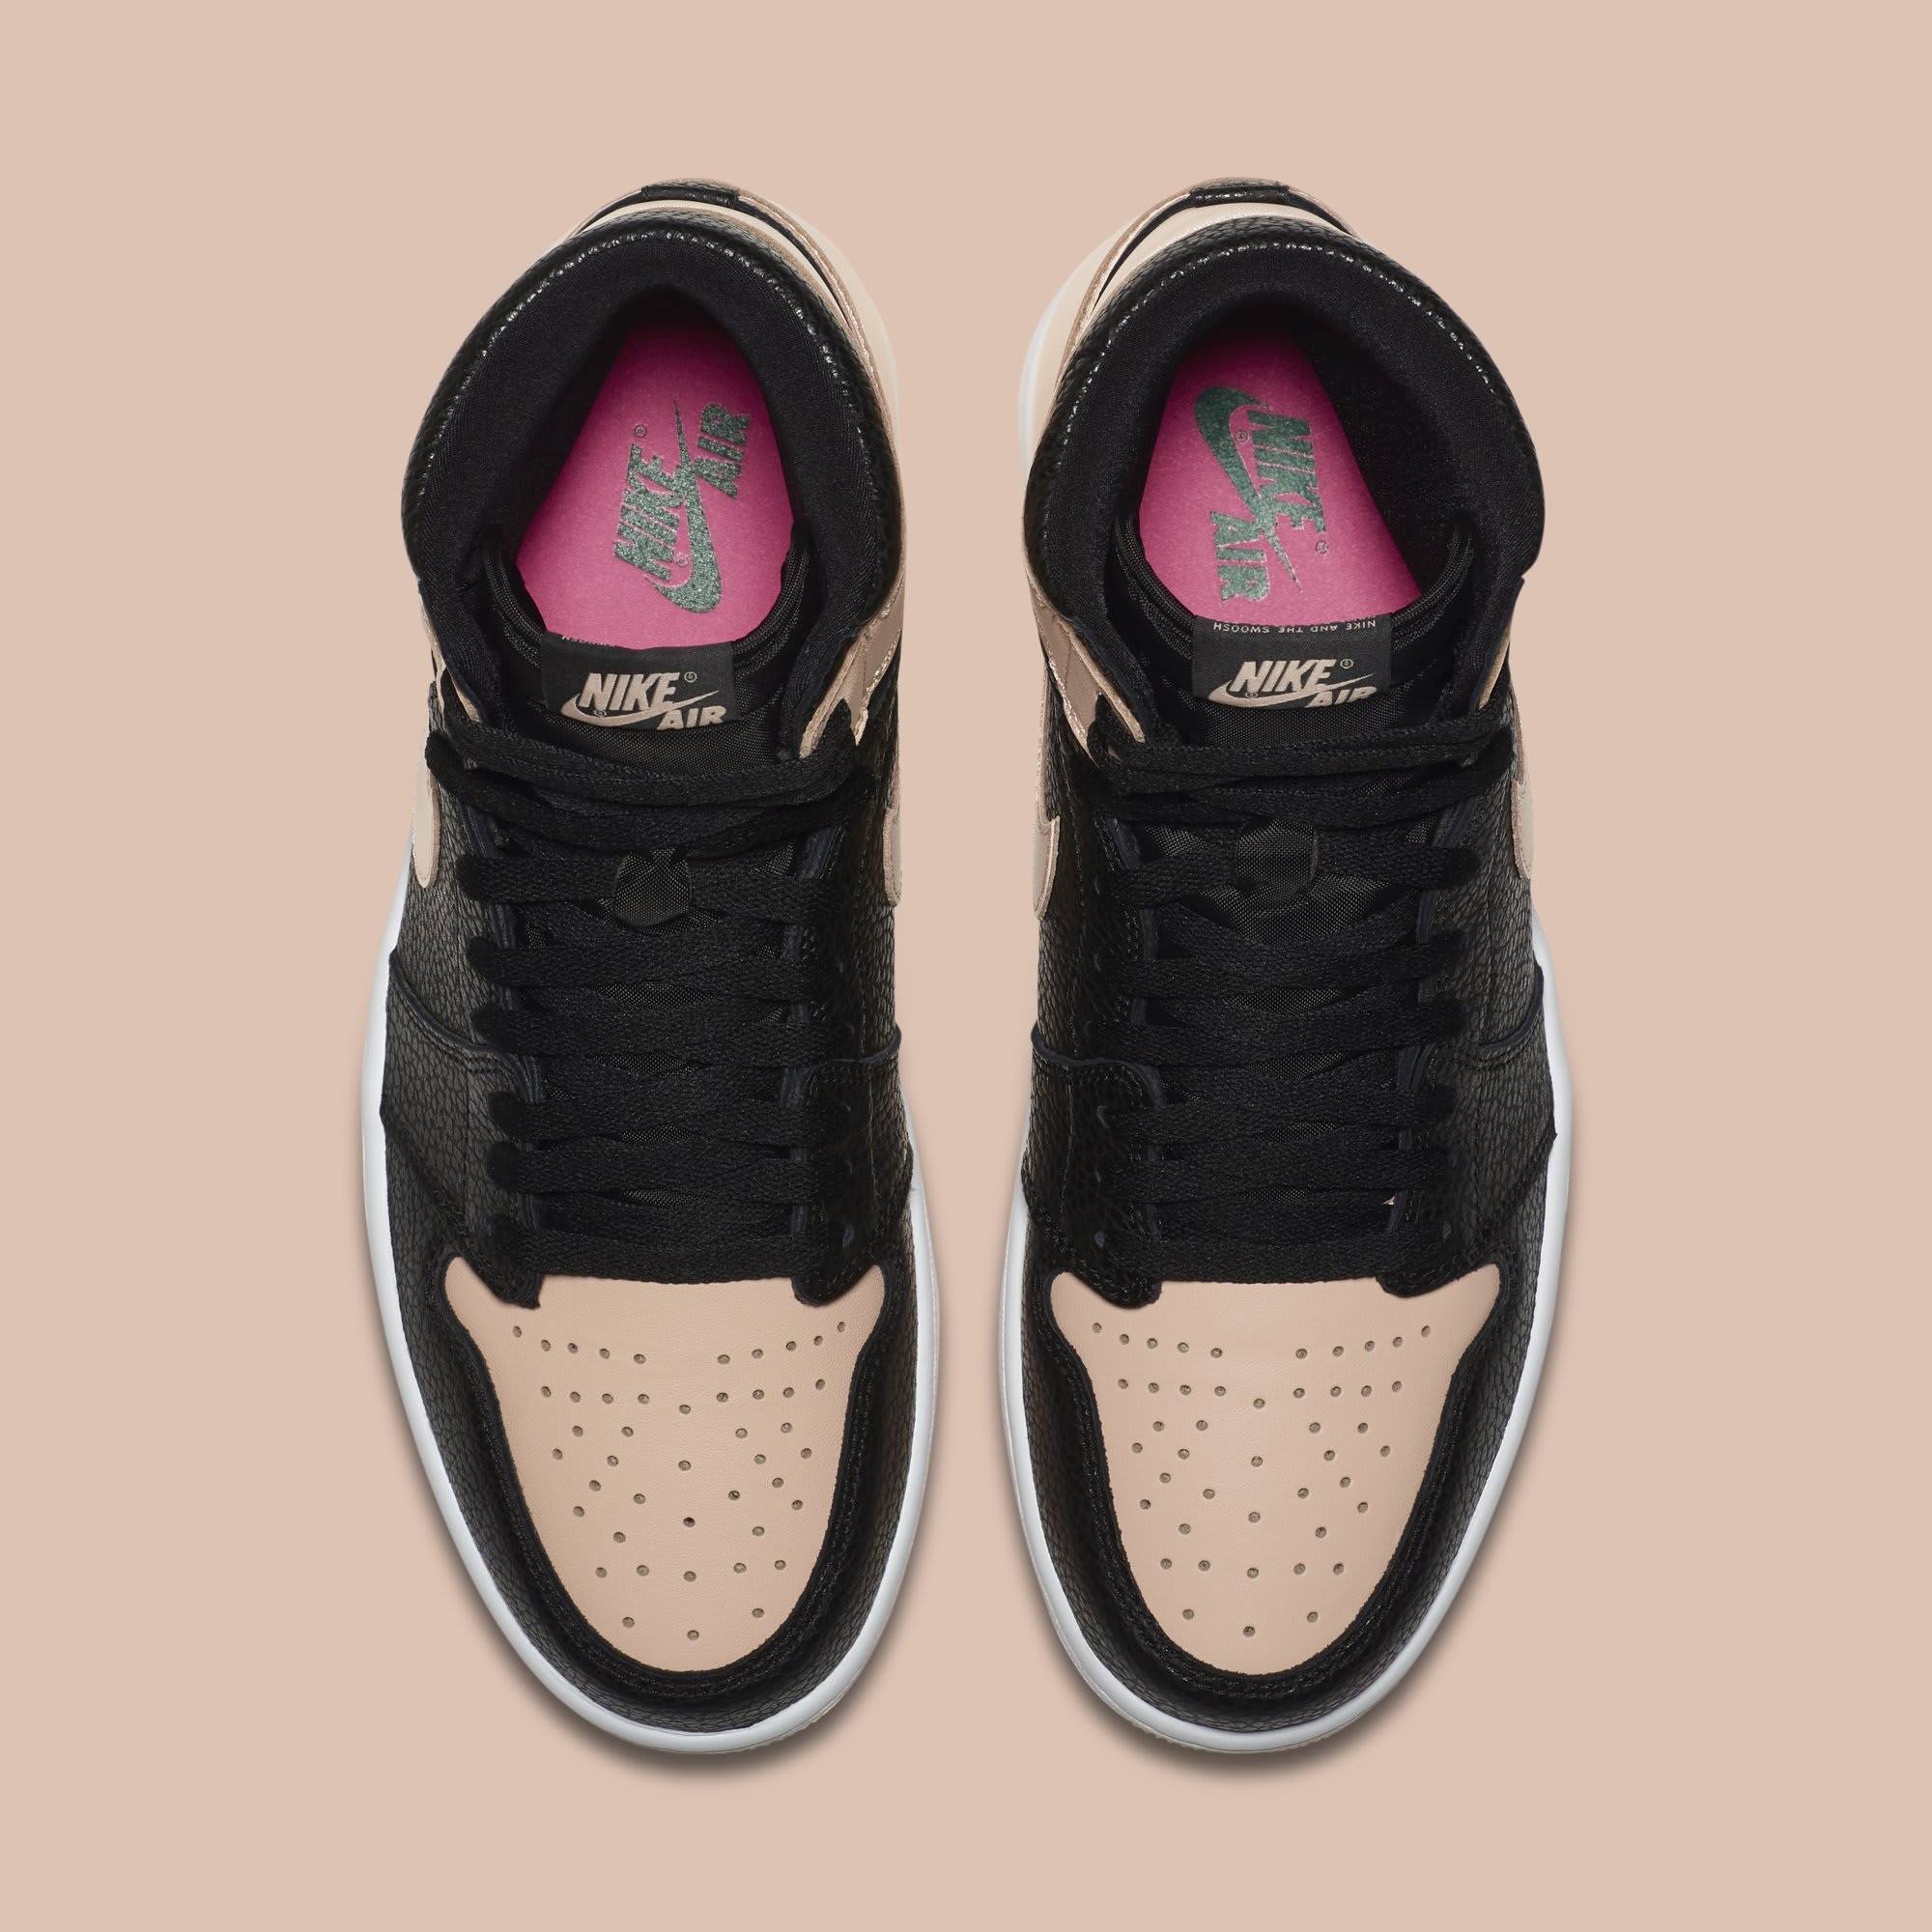 Air Jordan 1 'Crimson Tint' 555088-081 (Top)